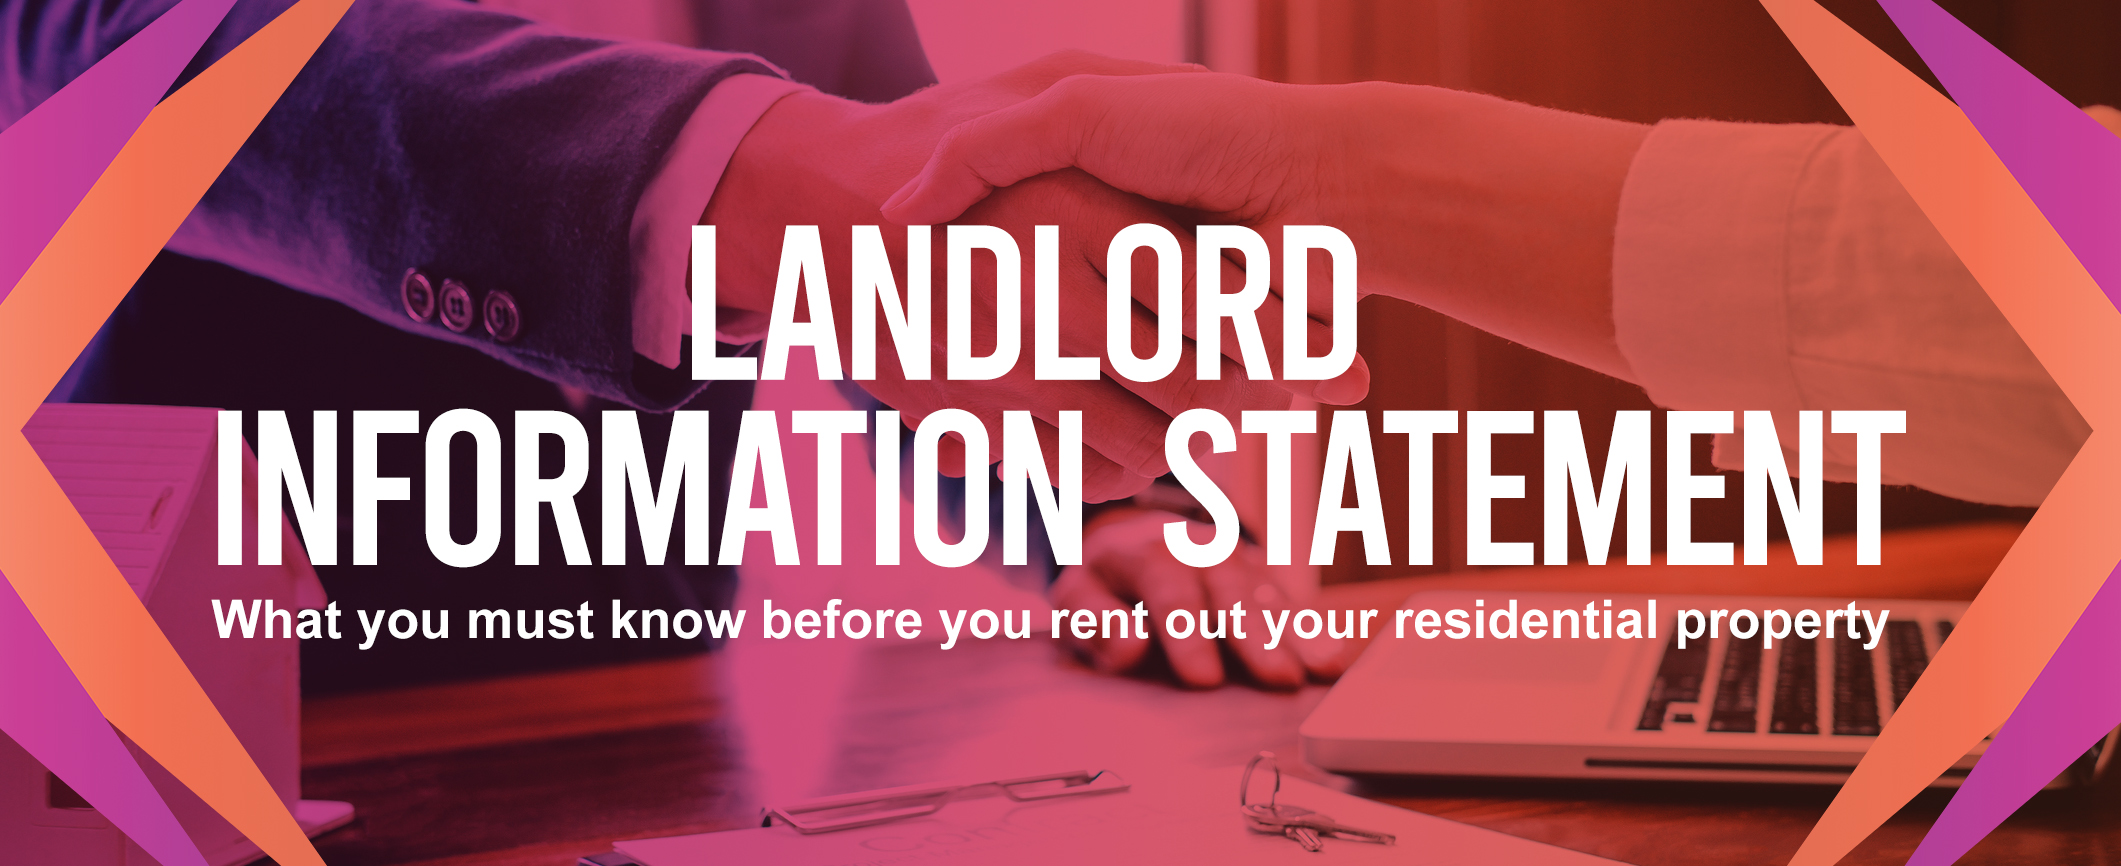 NSW Landlord Information Statement